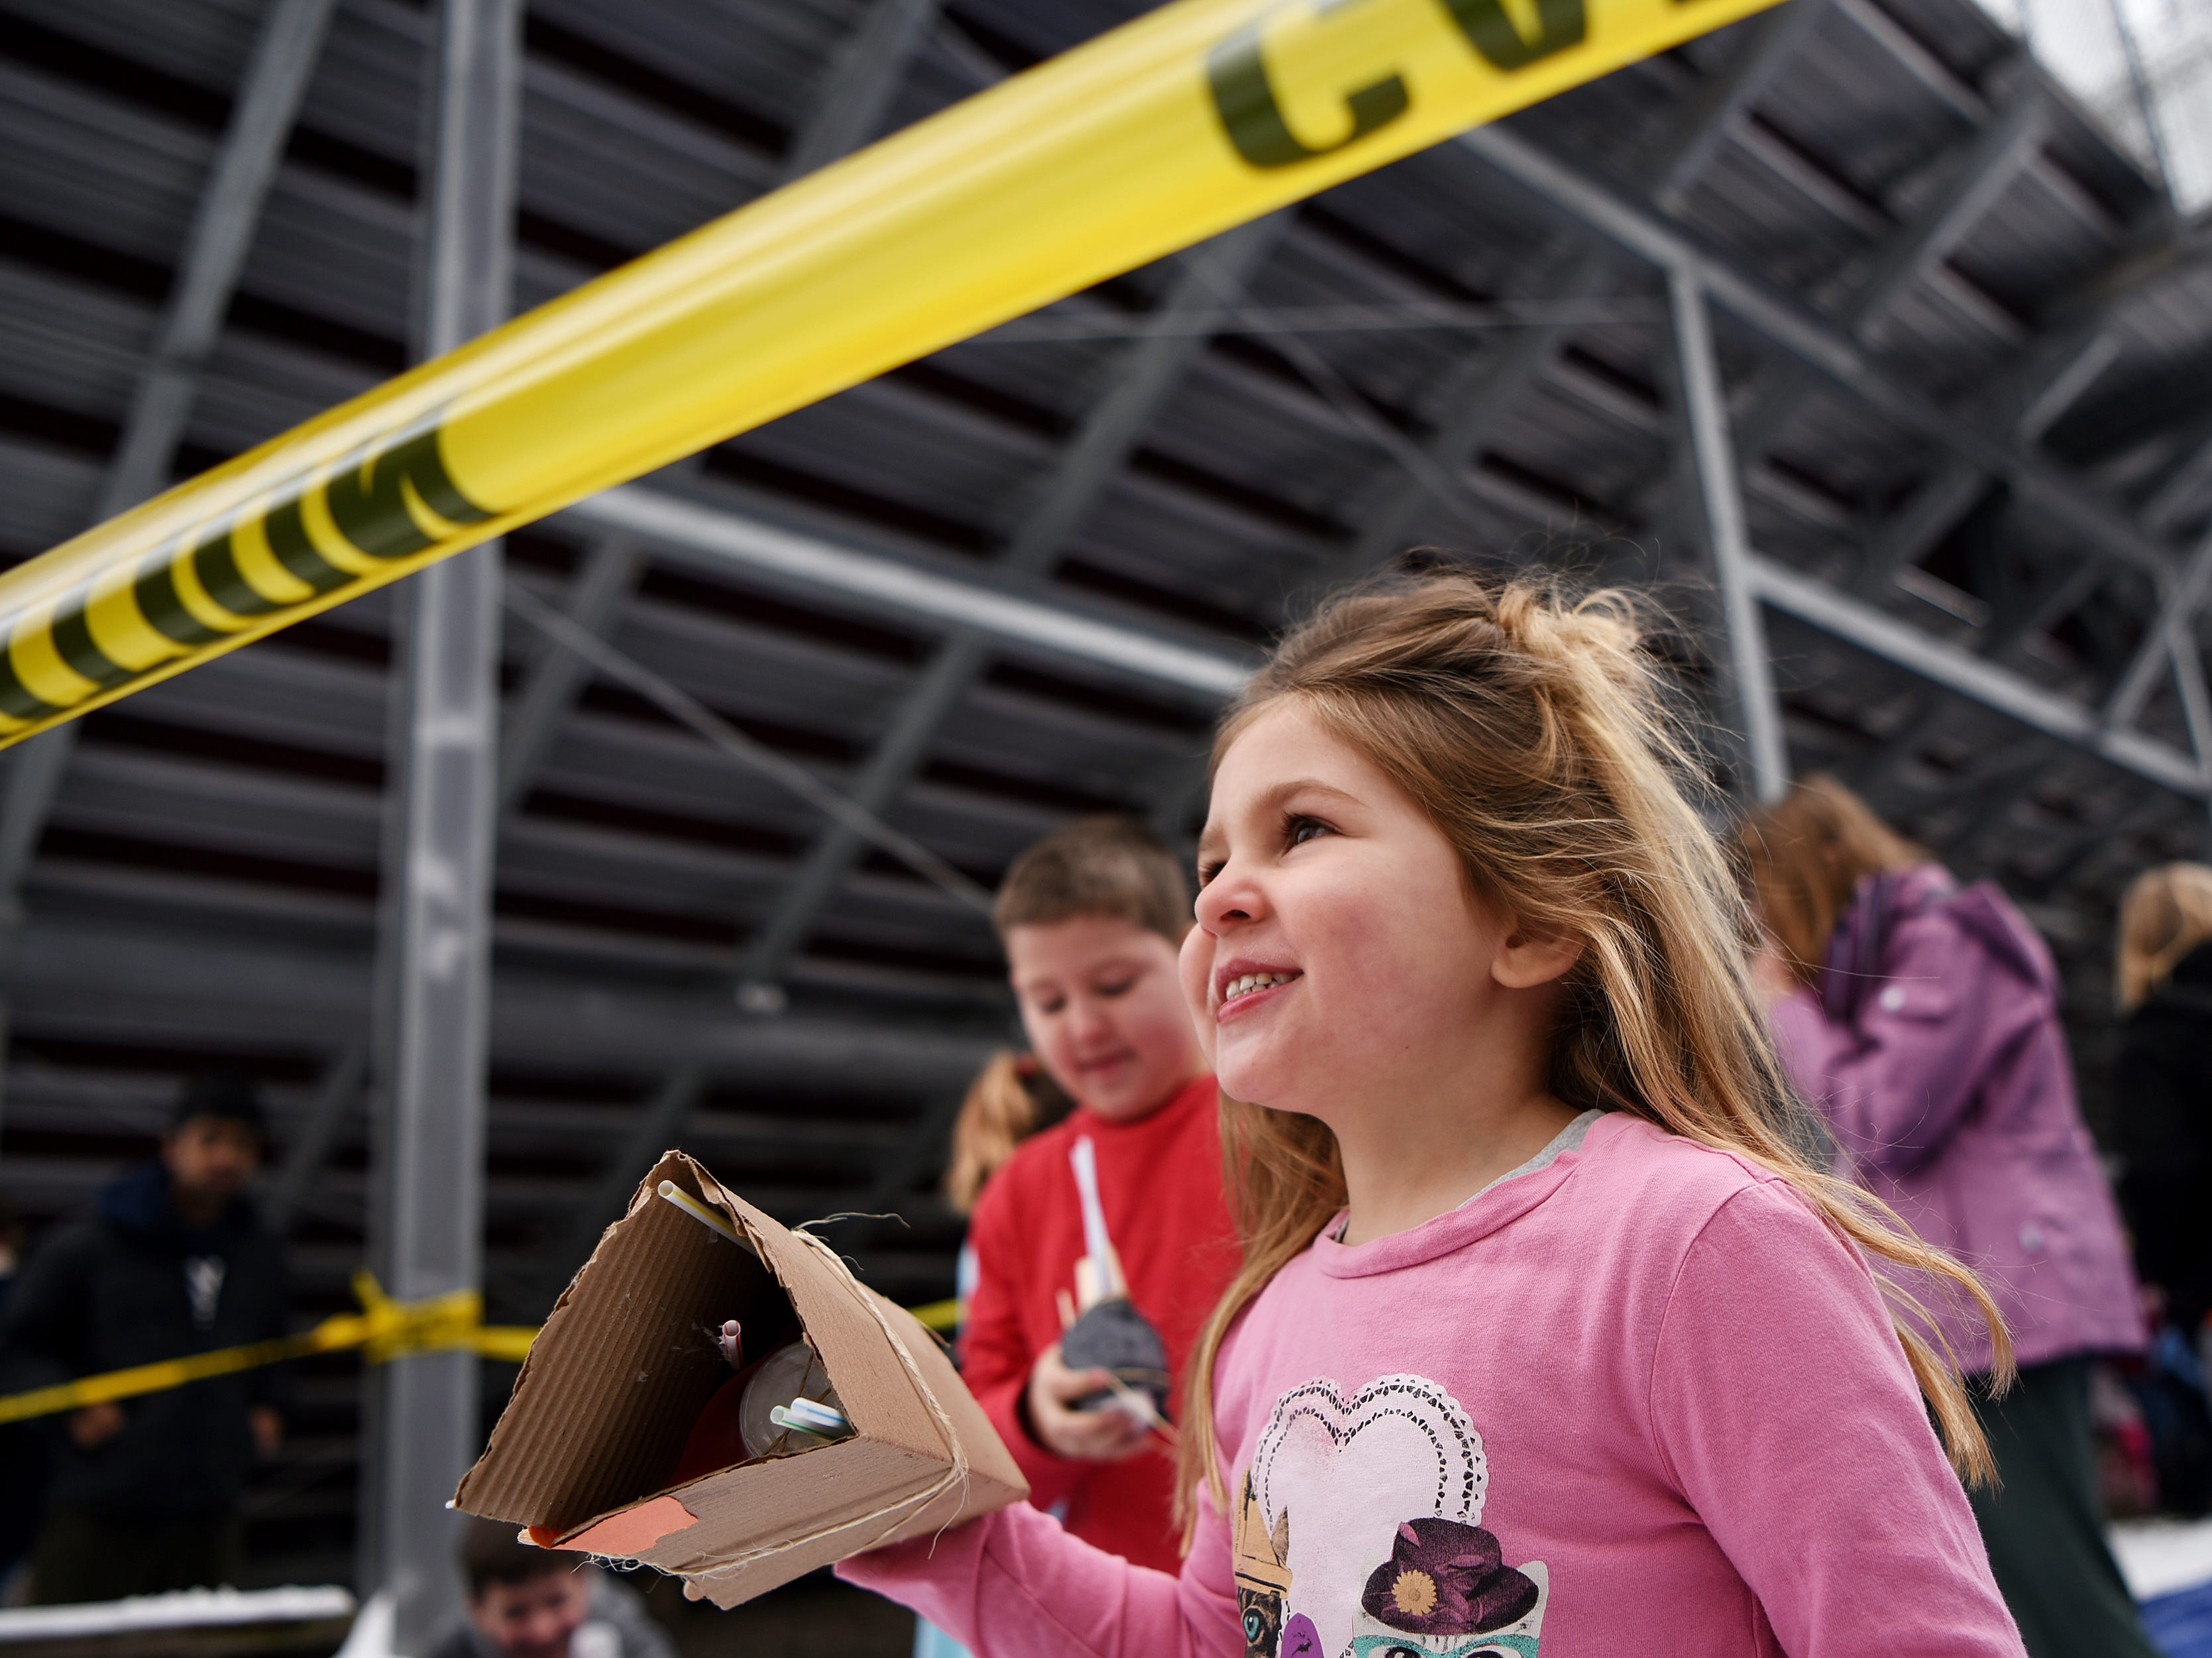 Siblings Catie, 5, and Jack, 9 check to see if their eggs landed safely during the Egg Drop. Children must create a device that will prevent their egg from breaking from a 30 foot drop. This is one of many hands on activities during Super Science Saturday held at Ridgewood High School in Ridgewood on Saturday March 2, 2019.